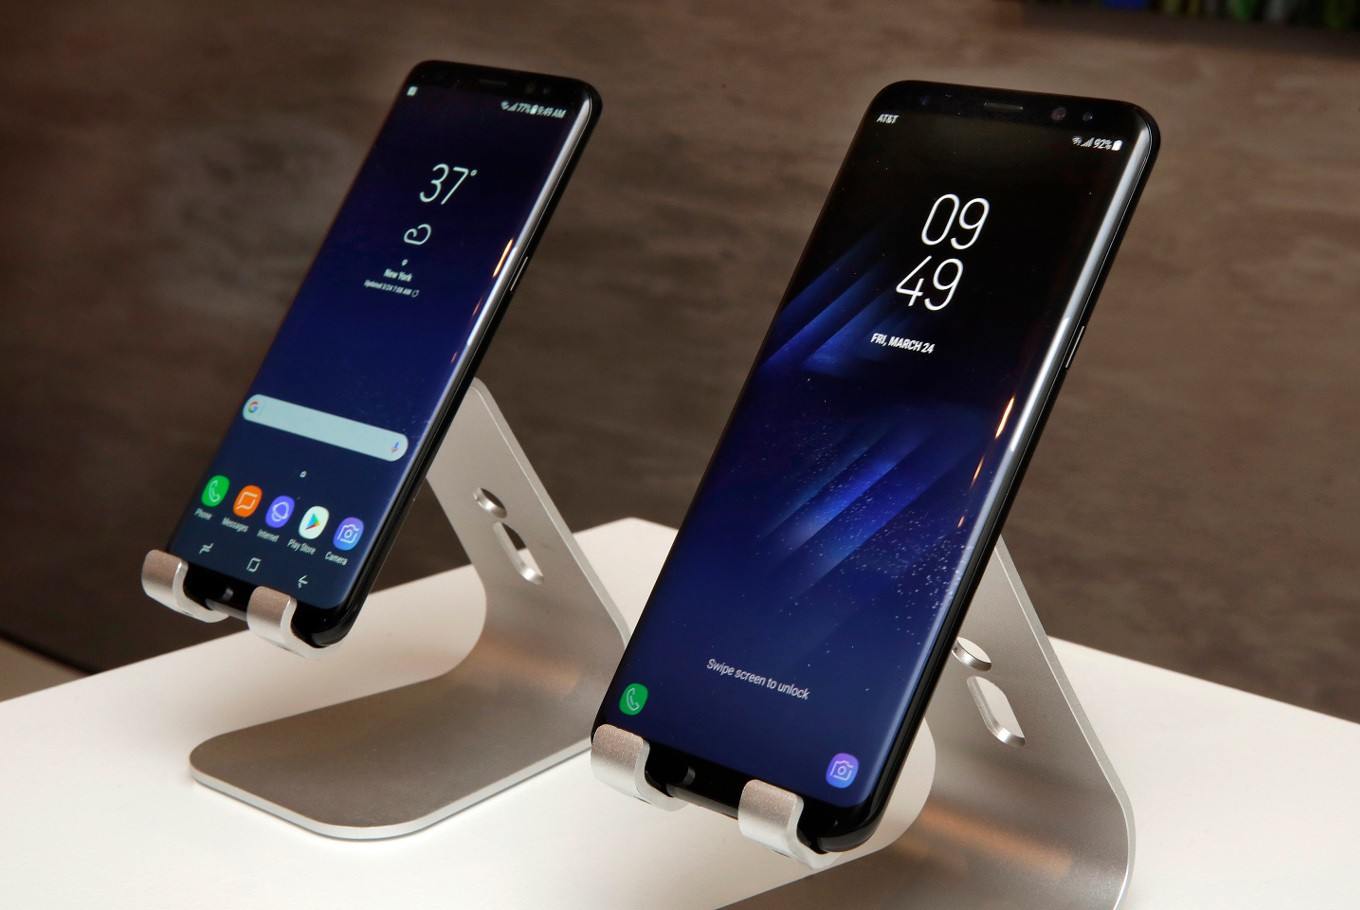 Samsung to upgrade Galaxy S8 software for red-tinted screen